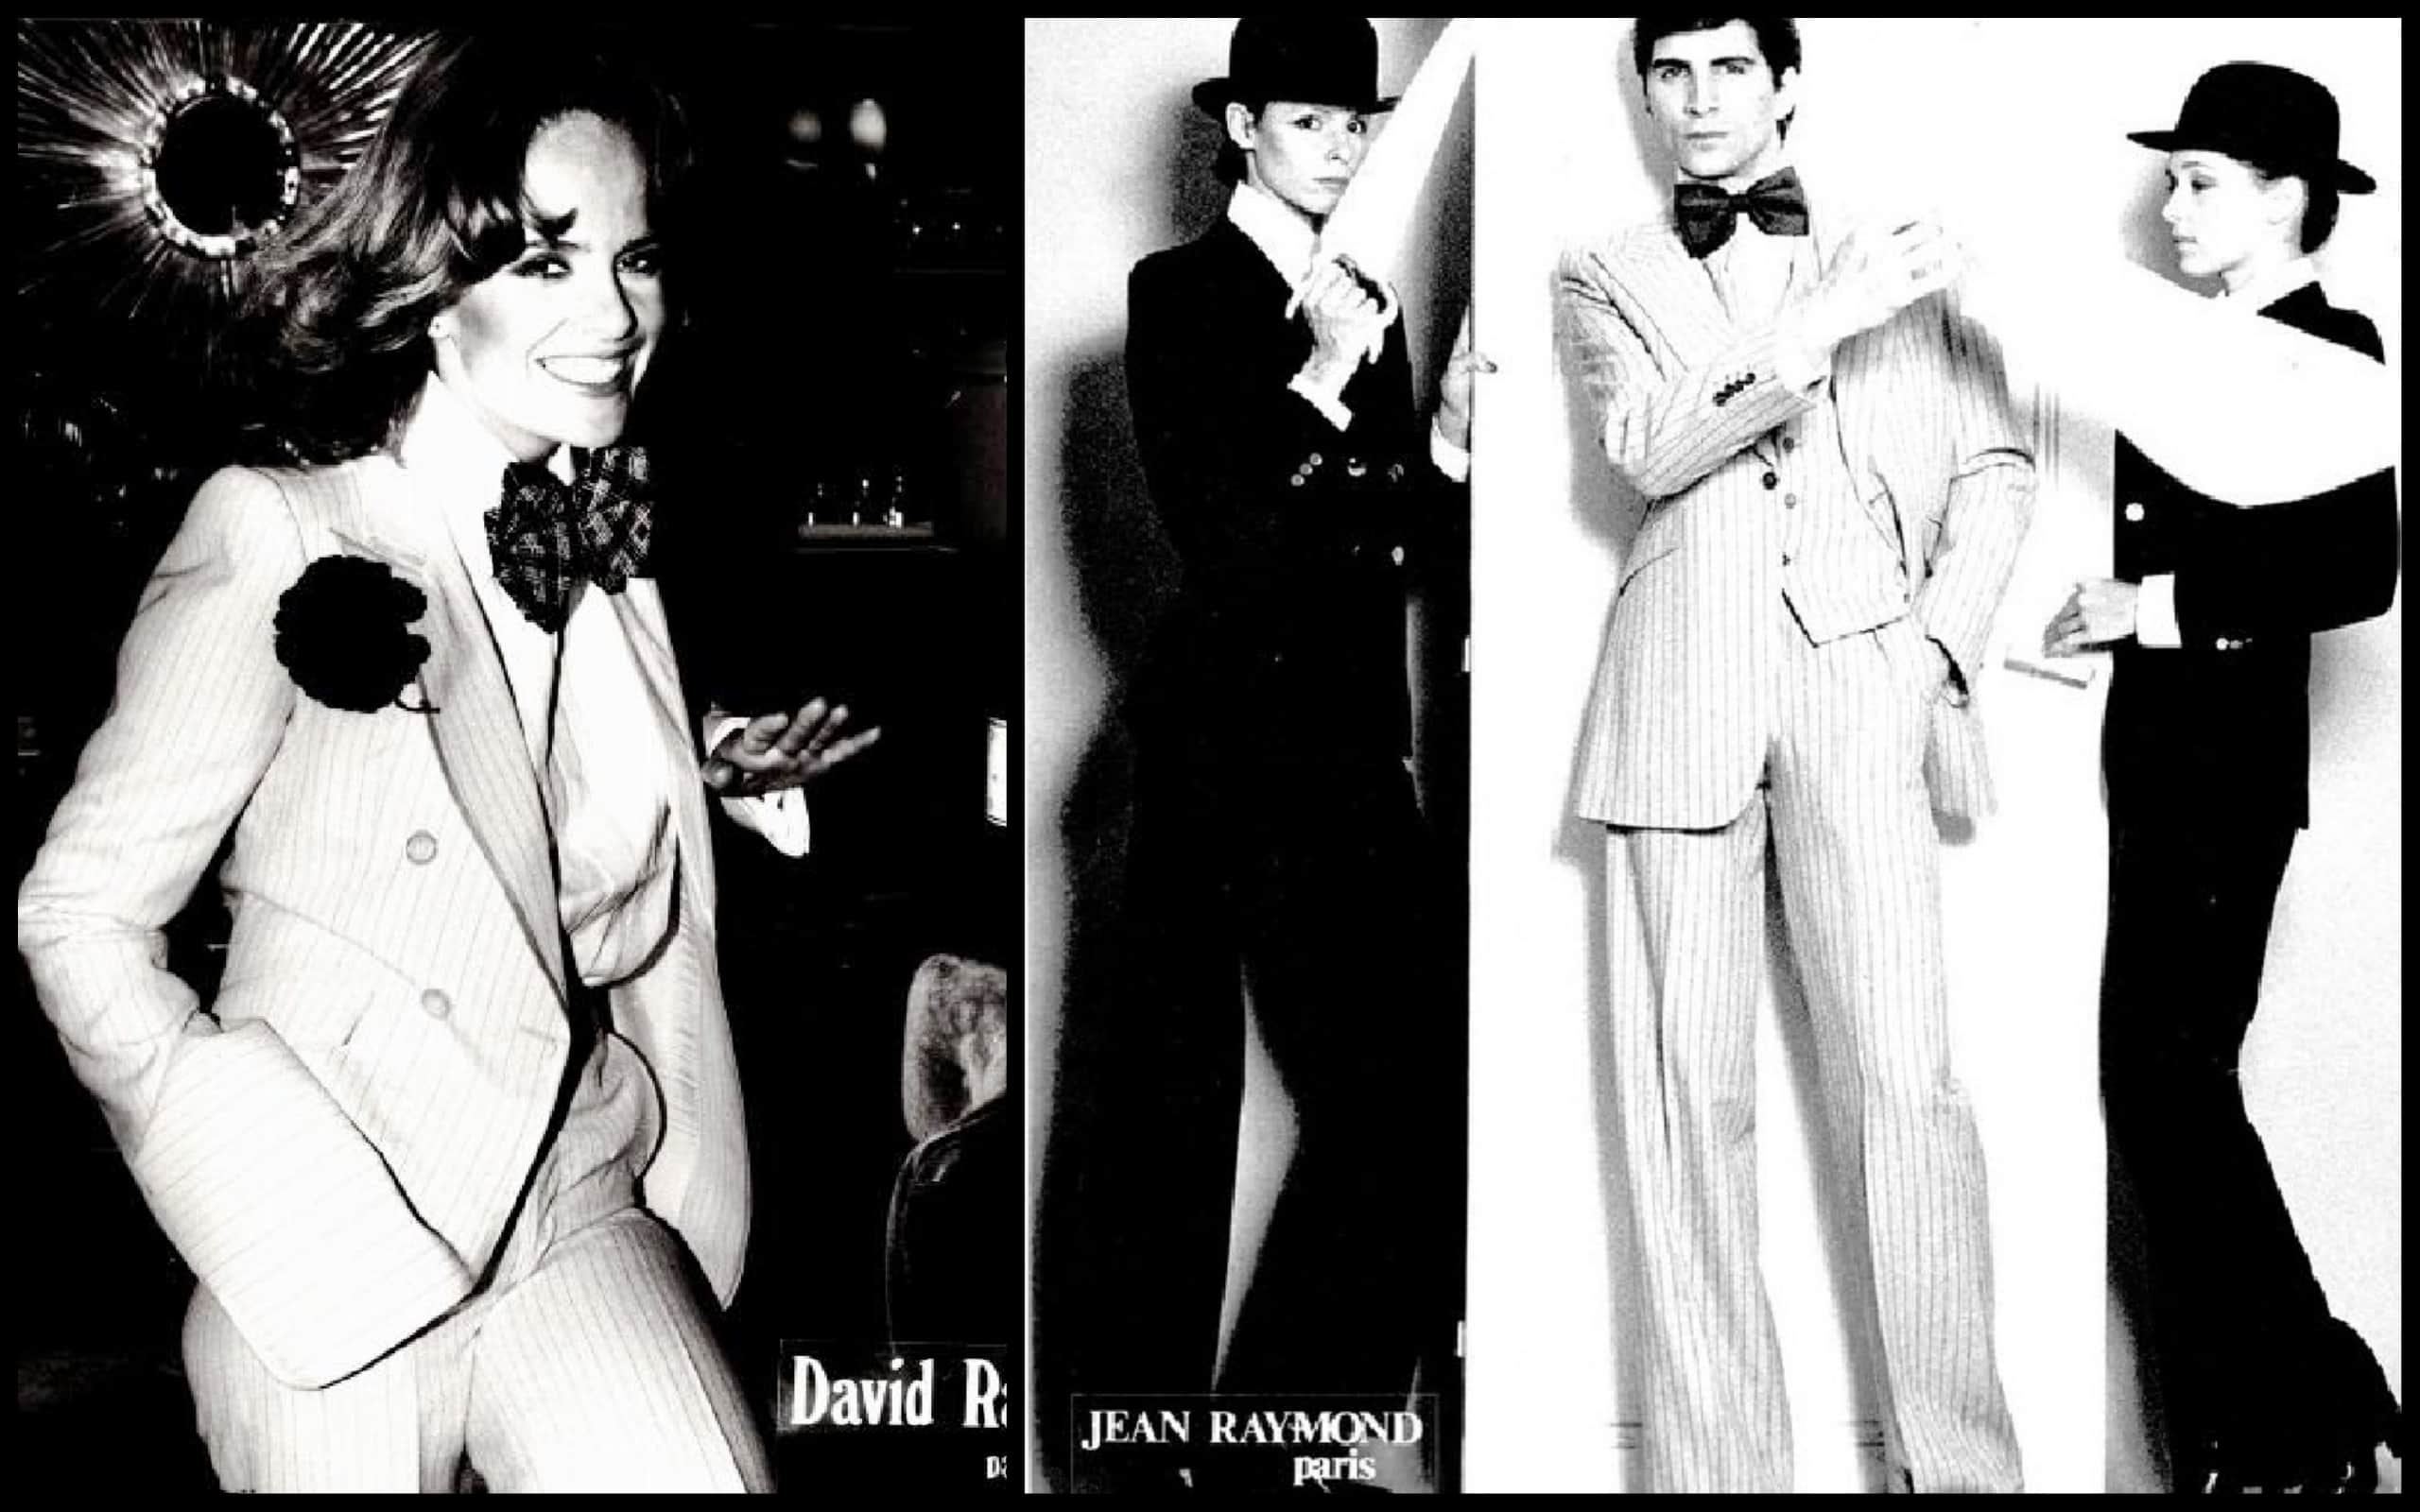 David-Ray-Tuxedo-and-costume-for-women-by-Tailor-JEAN-RAYMOND